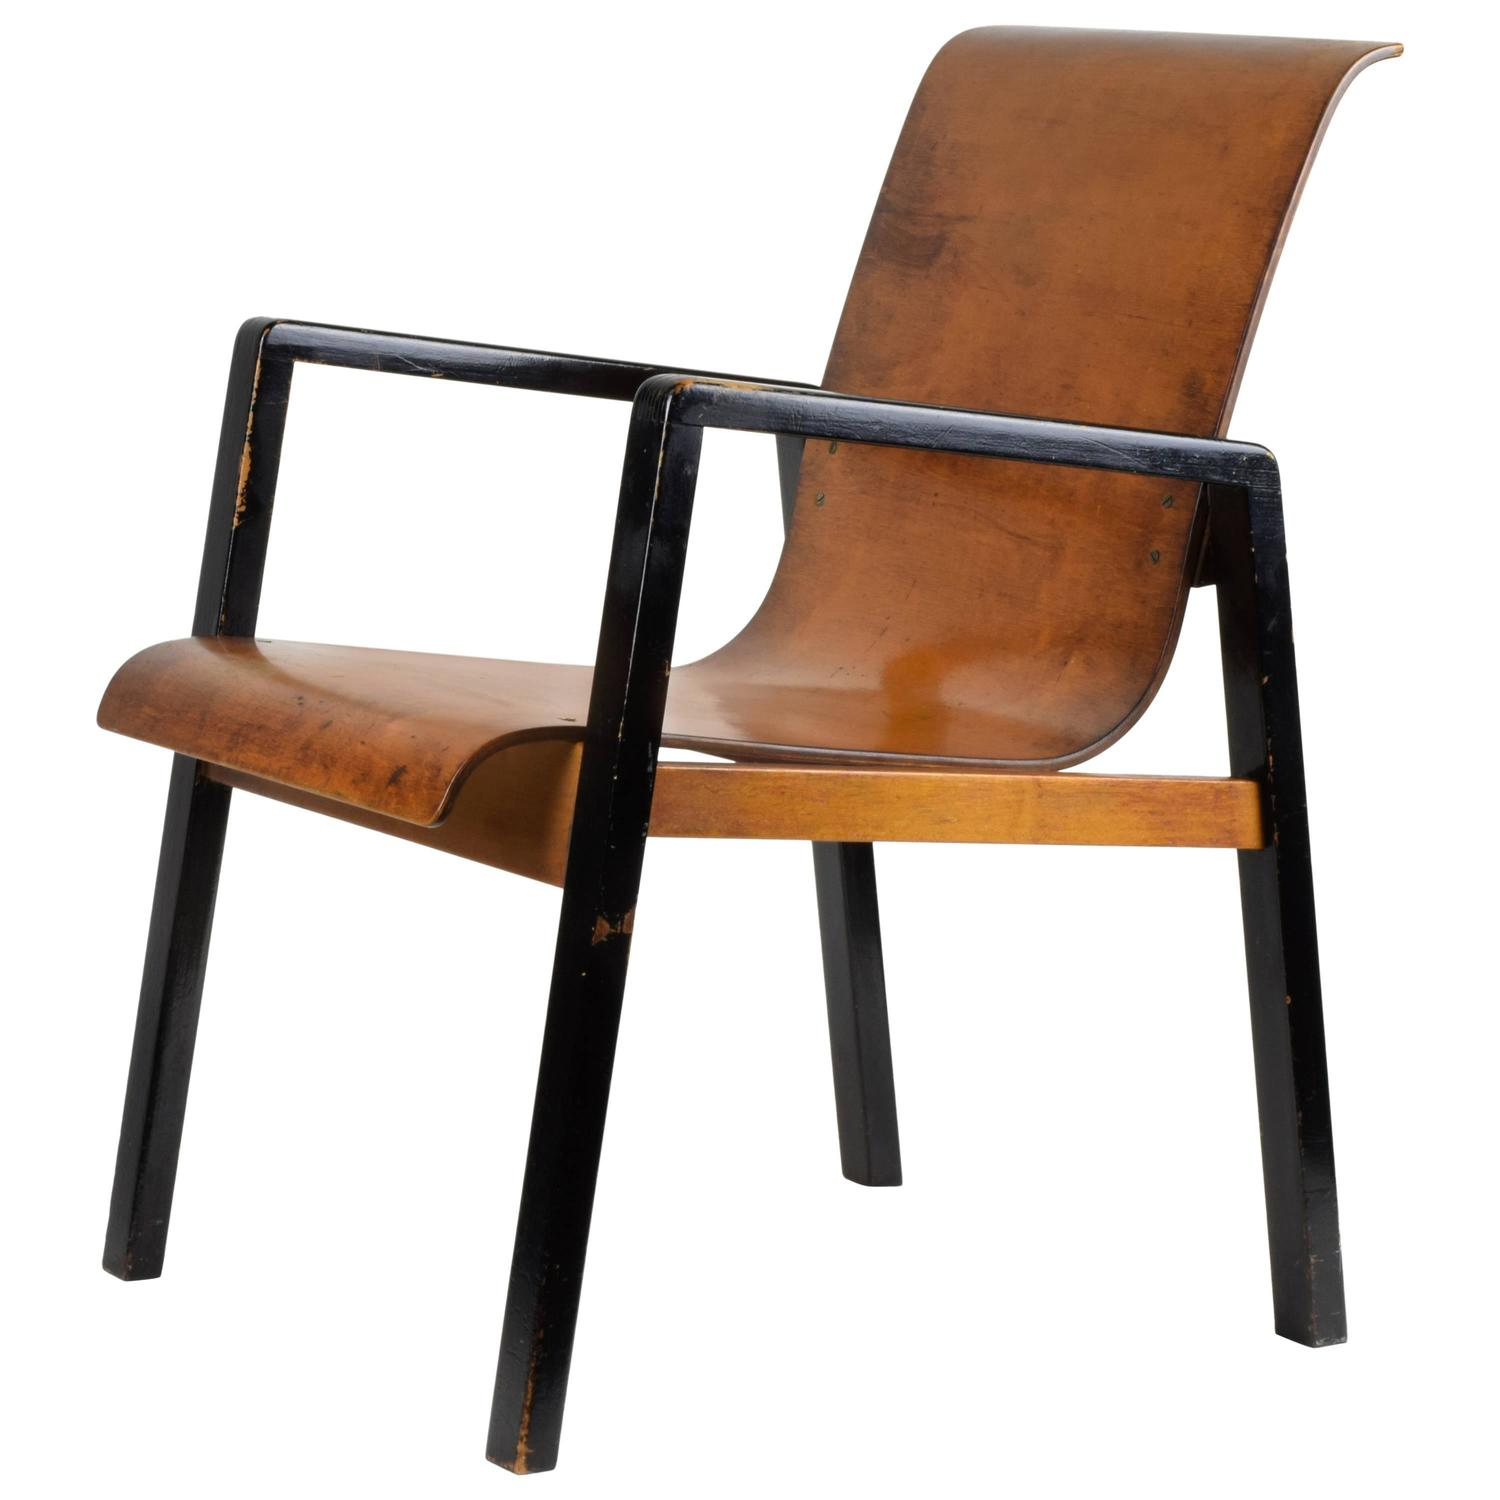 Alvar aalto armchair model 51 1932 at 1stdibs for Alvar aalto chaise